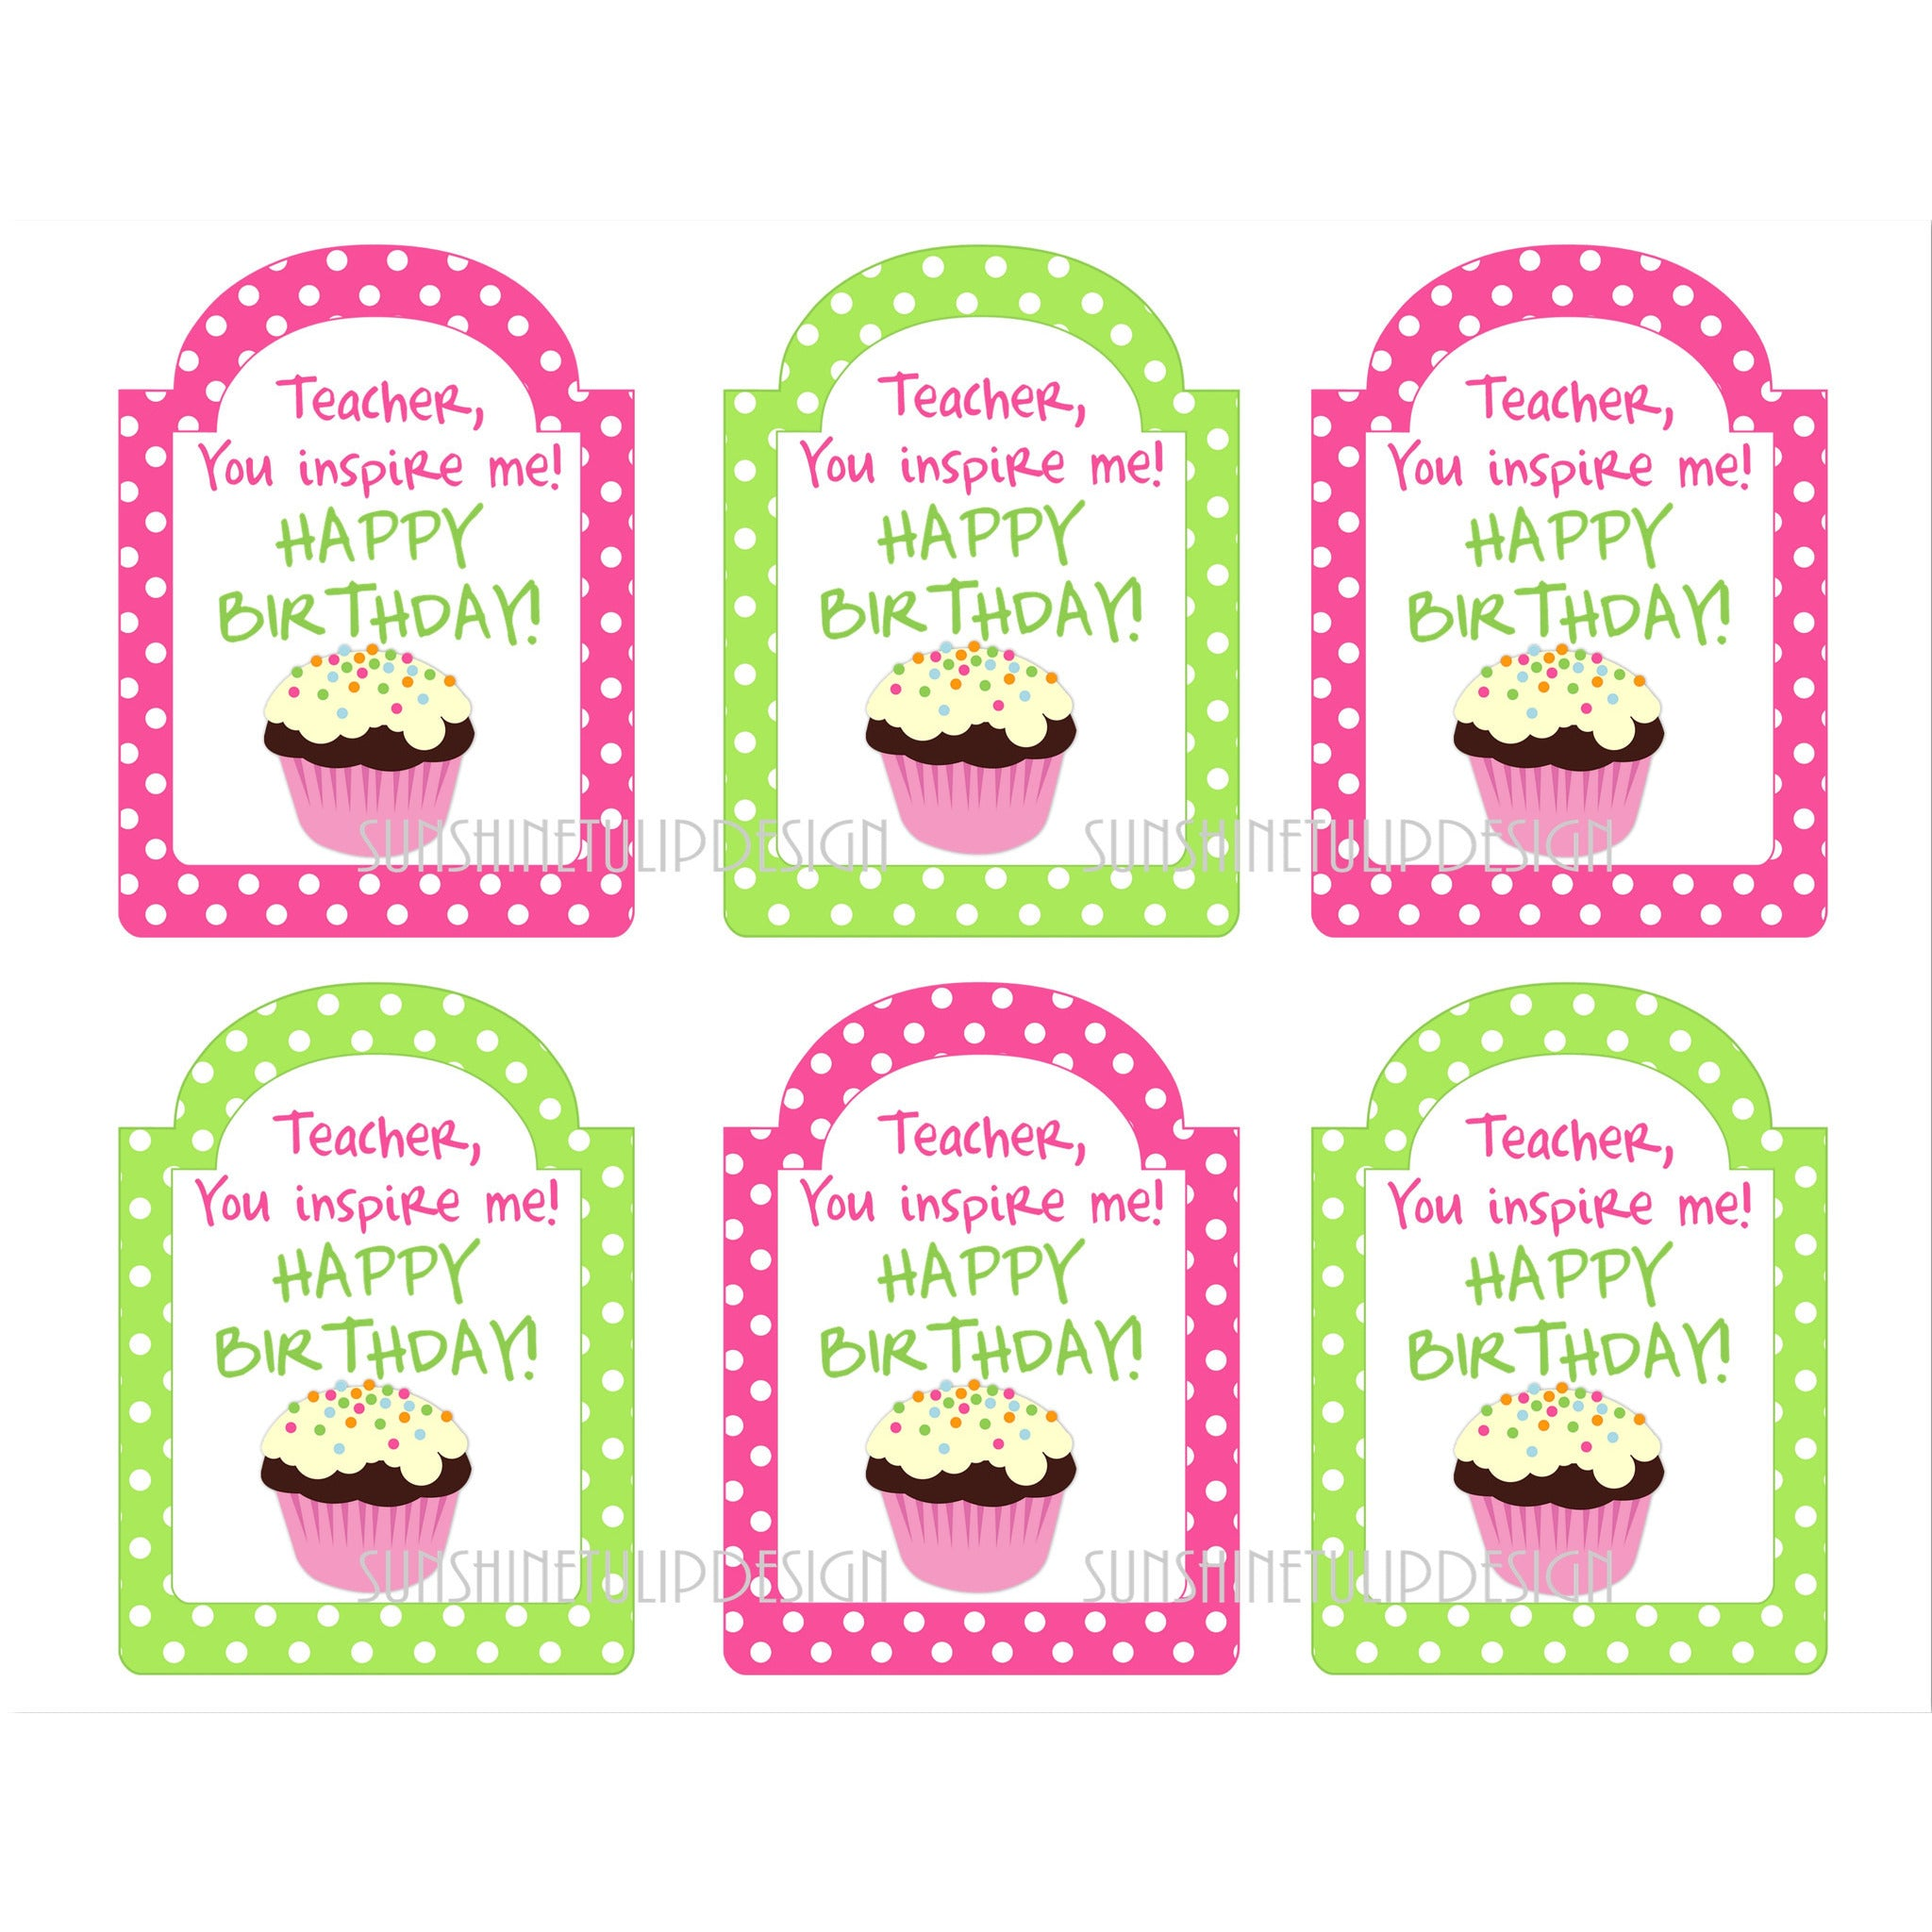 Printable Teacher Birthday Gift Tags Happy By SUNSHINETULIPDESIGN